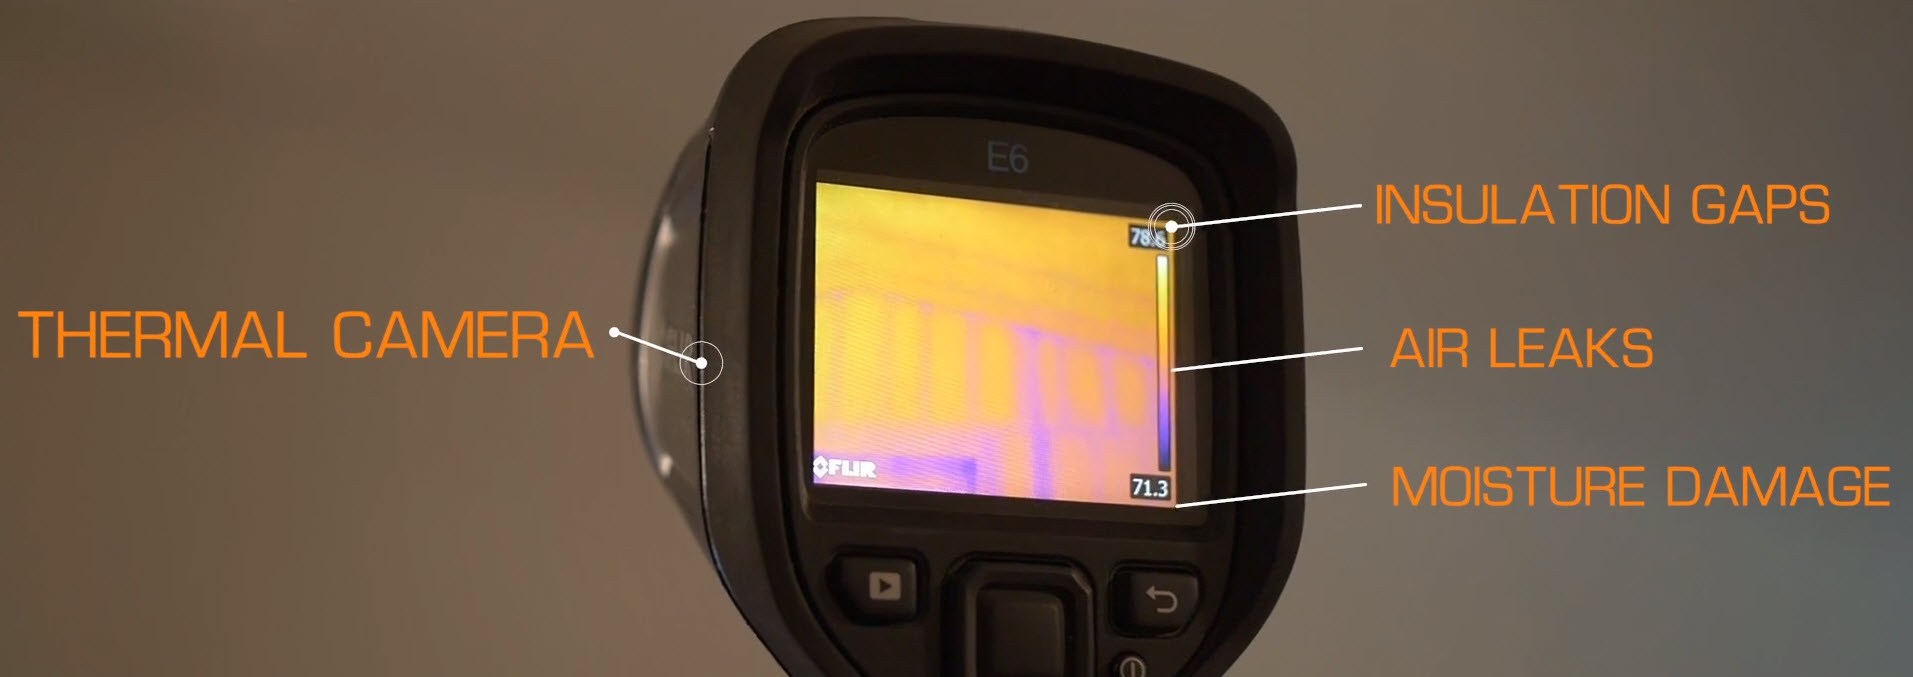 Boise infrared thermography